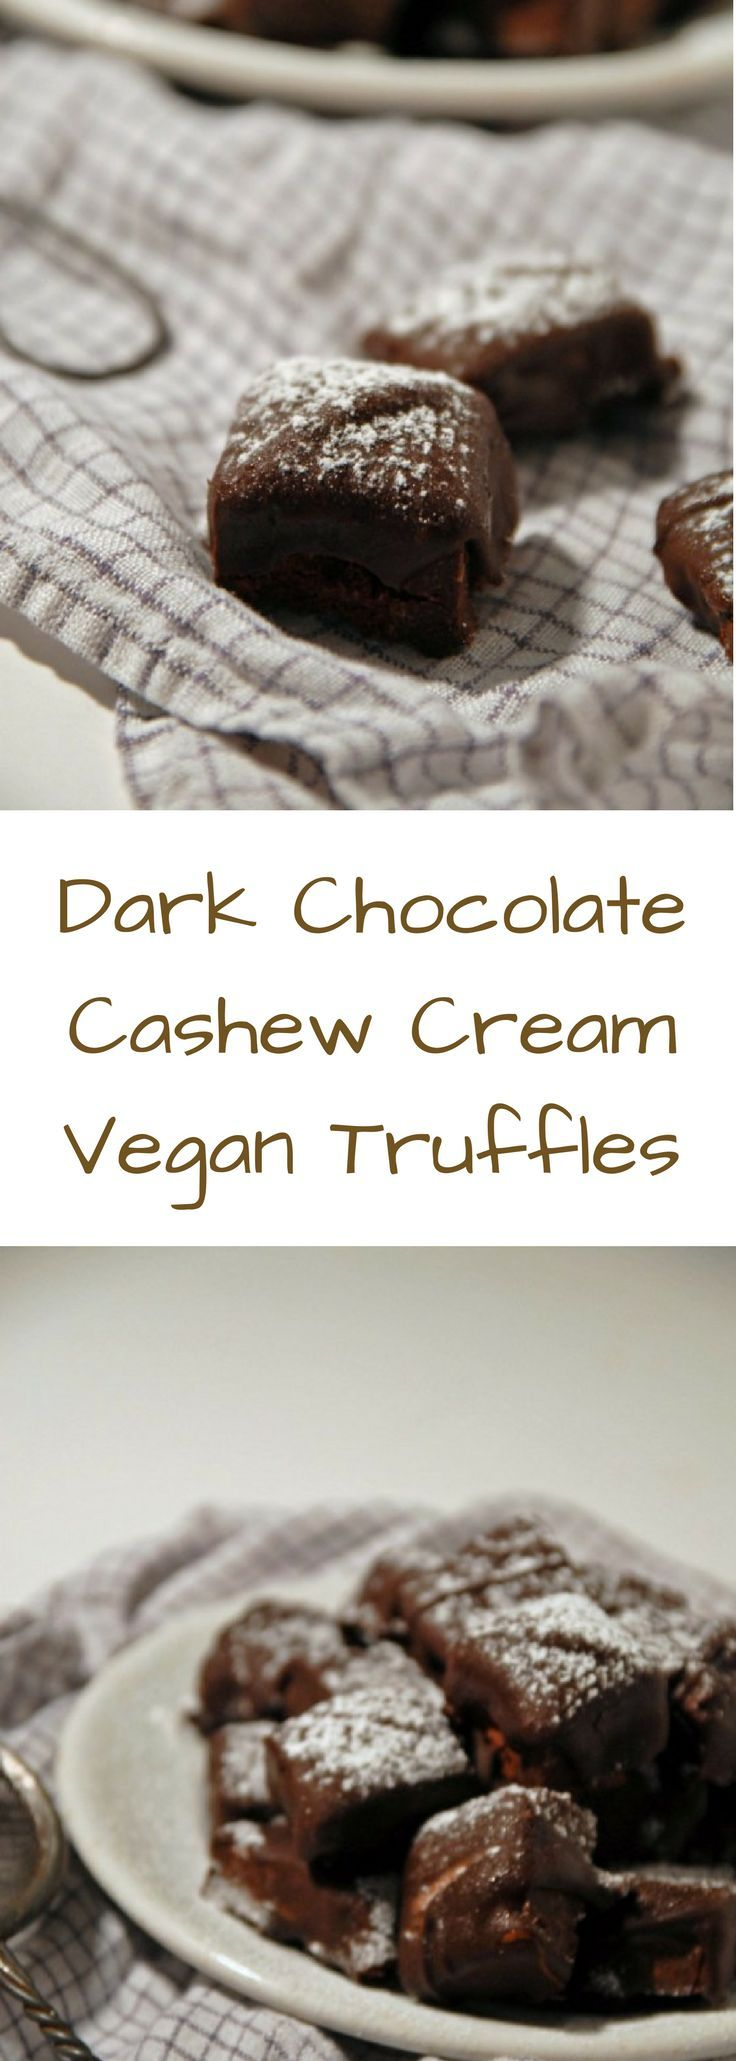 These are seriously the easiest truffles you have ever seen with so many possibilities!